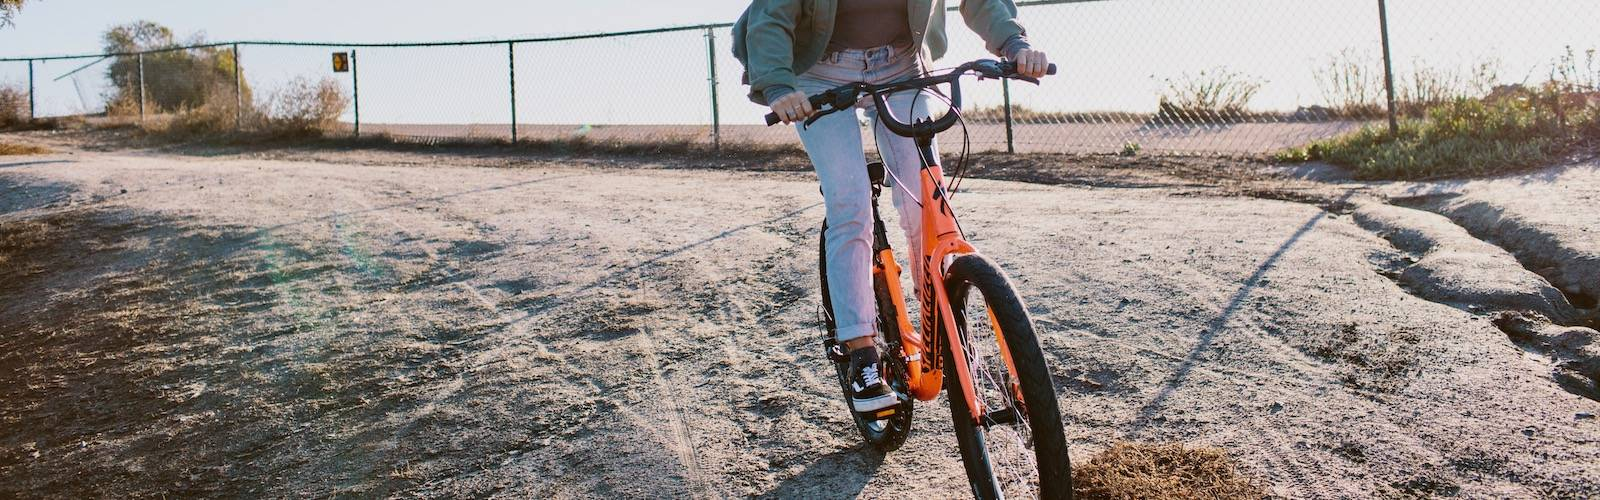 Active comfort bikes for all of your favorite adventures are available at Mike's Bikes!